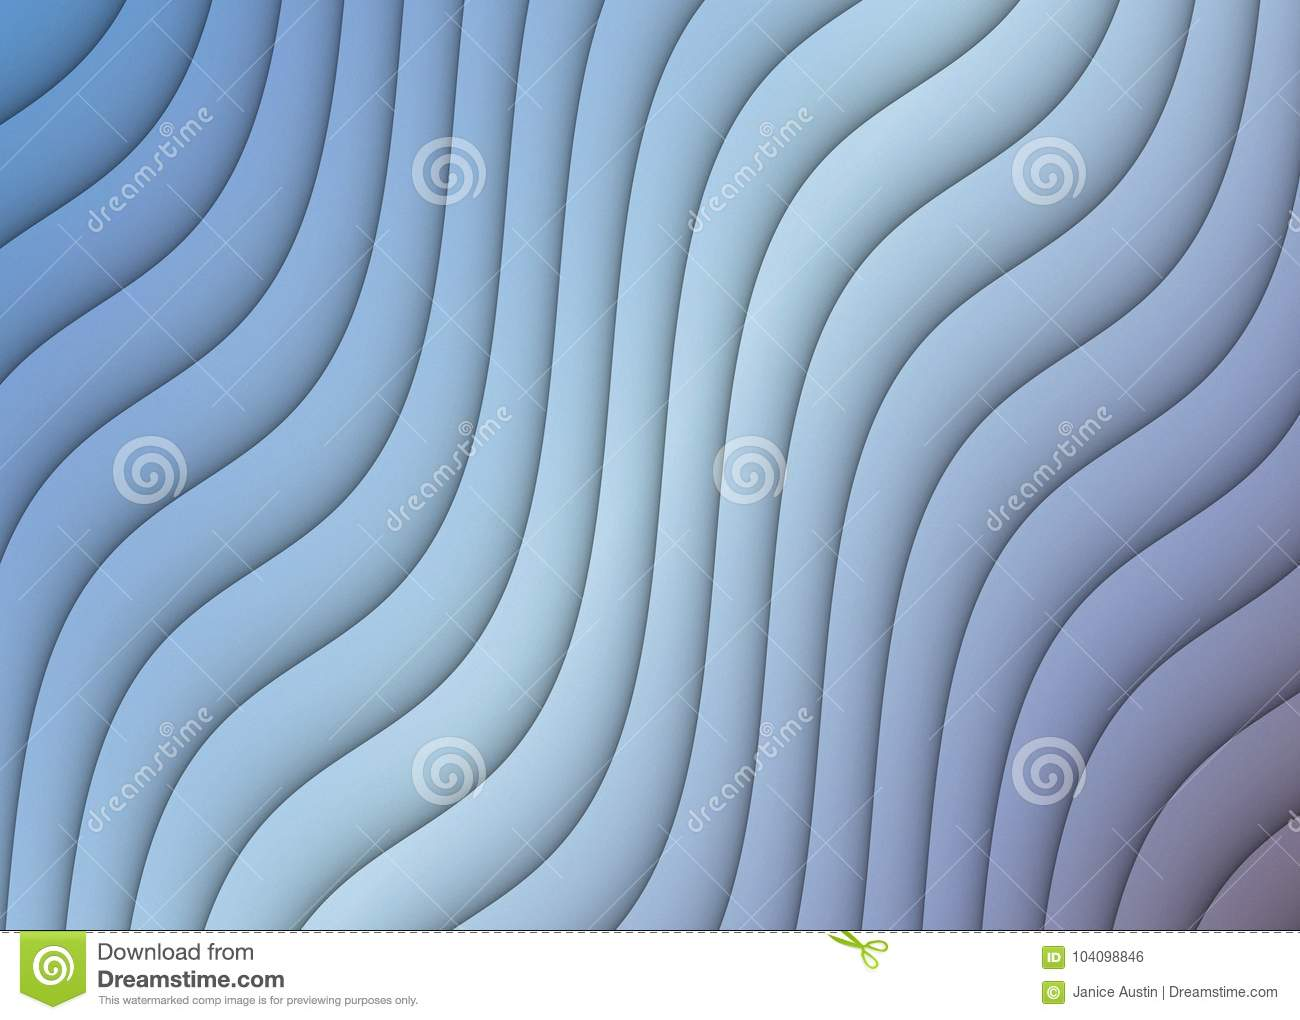 Abstract Background Ripples Curves Diagonal Cascading Design Blue Gray White